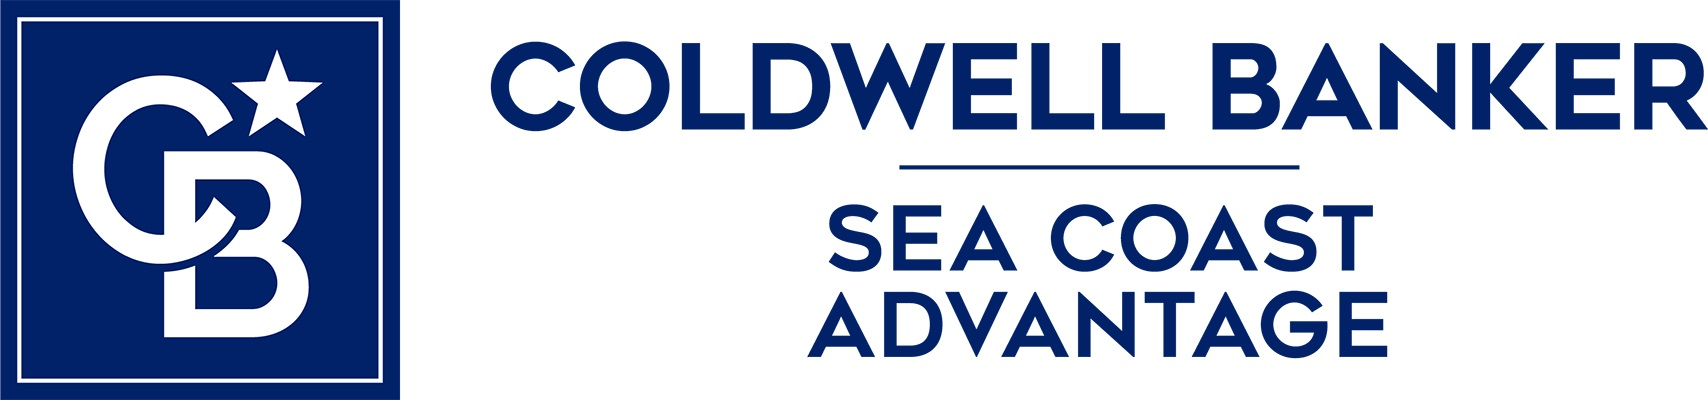 Jocelyn Hopkins - Coldwell Banker Sea Coast Advantage Realty Logo